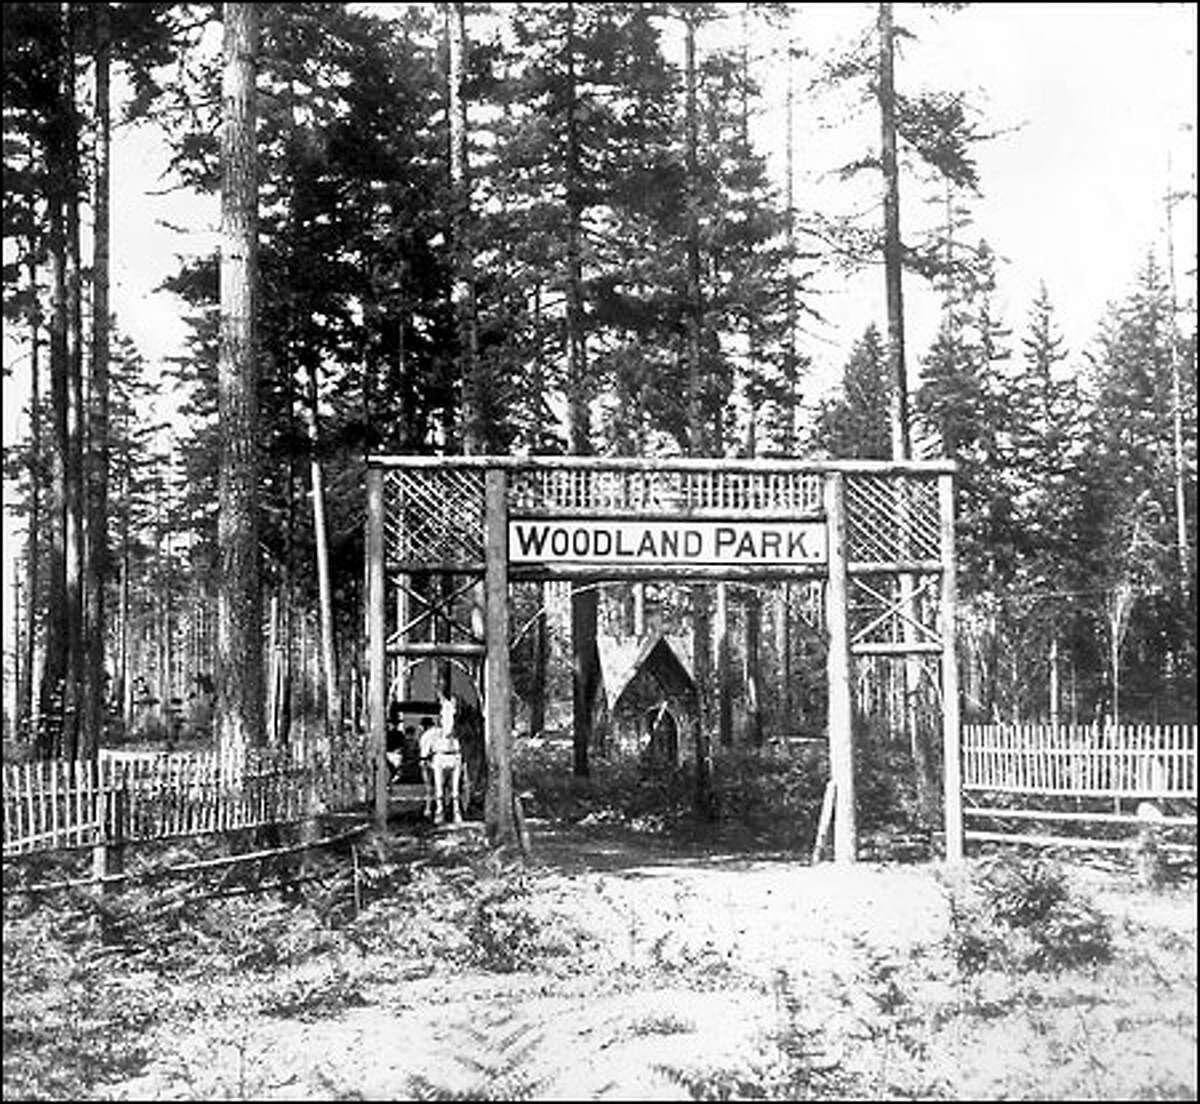 Woodland Park, circa 1900: A horse and carriage leave Woodland Park, which was purchased from the estate of Guy Phinney in 1899 for $100,000 though some people protested it was too far north to be a public park. In 1903, a small collection of animals was donated to the park, marking the start of the Woodland Park Zoo.